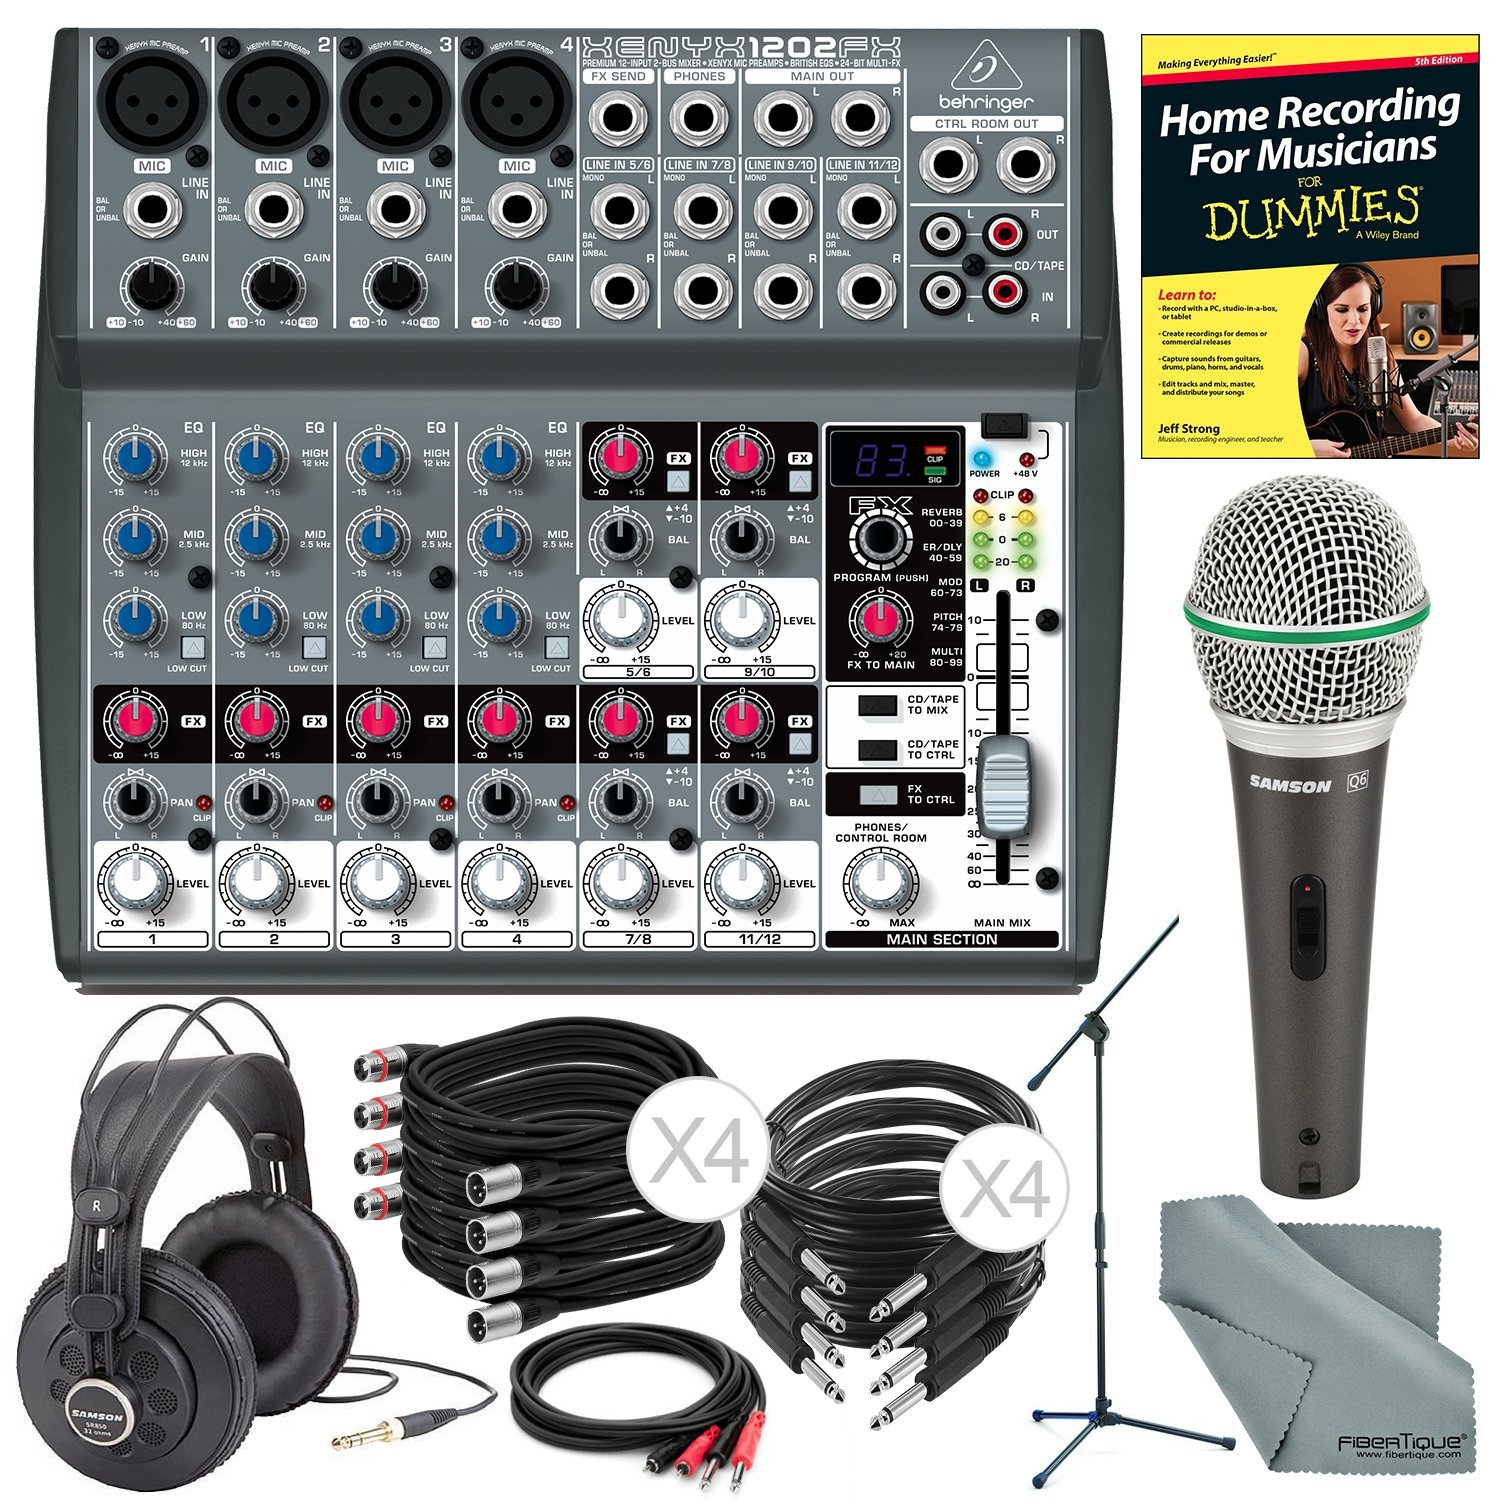 Behringer XENYX 1202FX 12 Channel Audio Mixer w/ Effects Processor and Deluxe Bundle w/ Samson Q6 Mic & Stand + Studio-Reference Headphones + Cables + More by Photo Savings (Image #1)